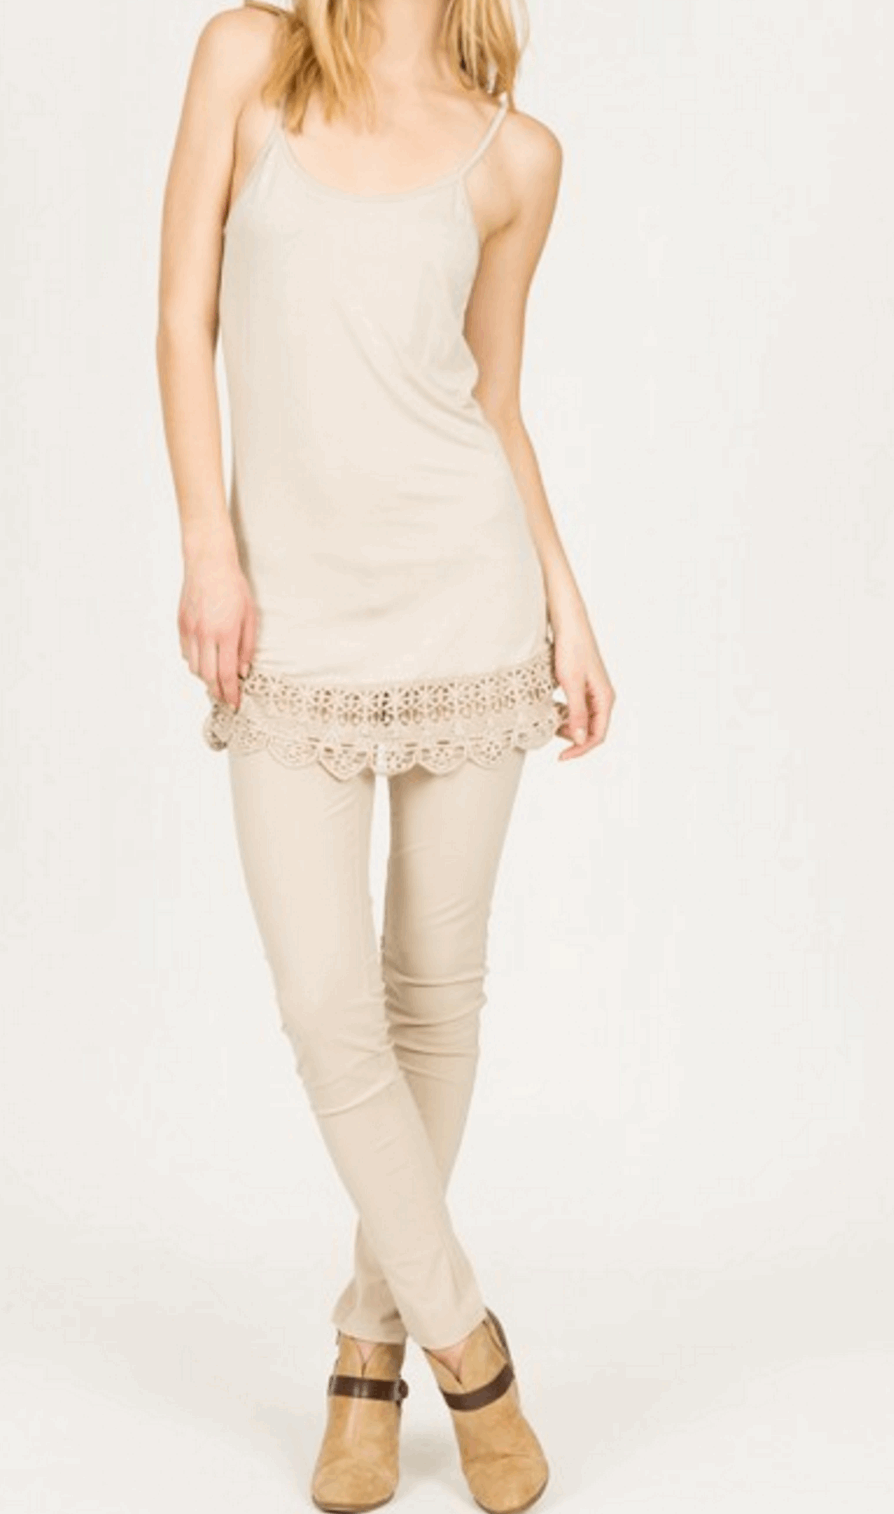 Camisole with Crochet Hemline in Cream from Monoreno | Beauty Cafe - 4